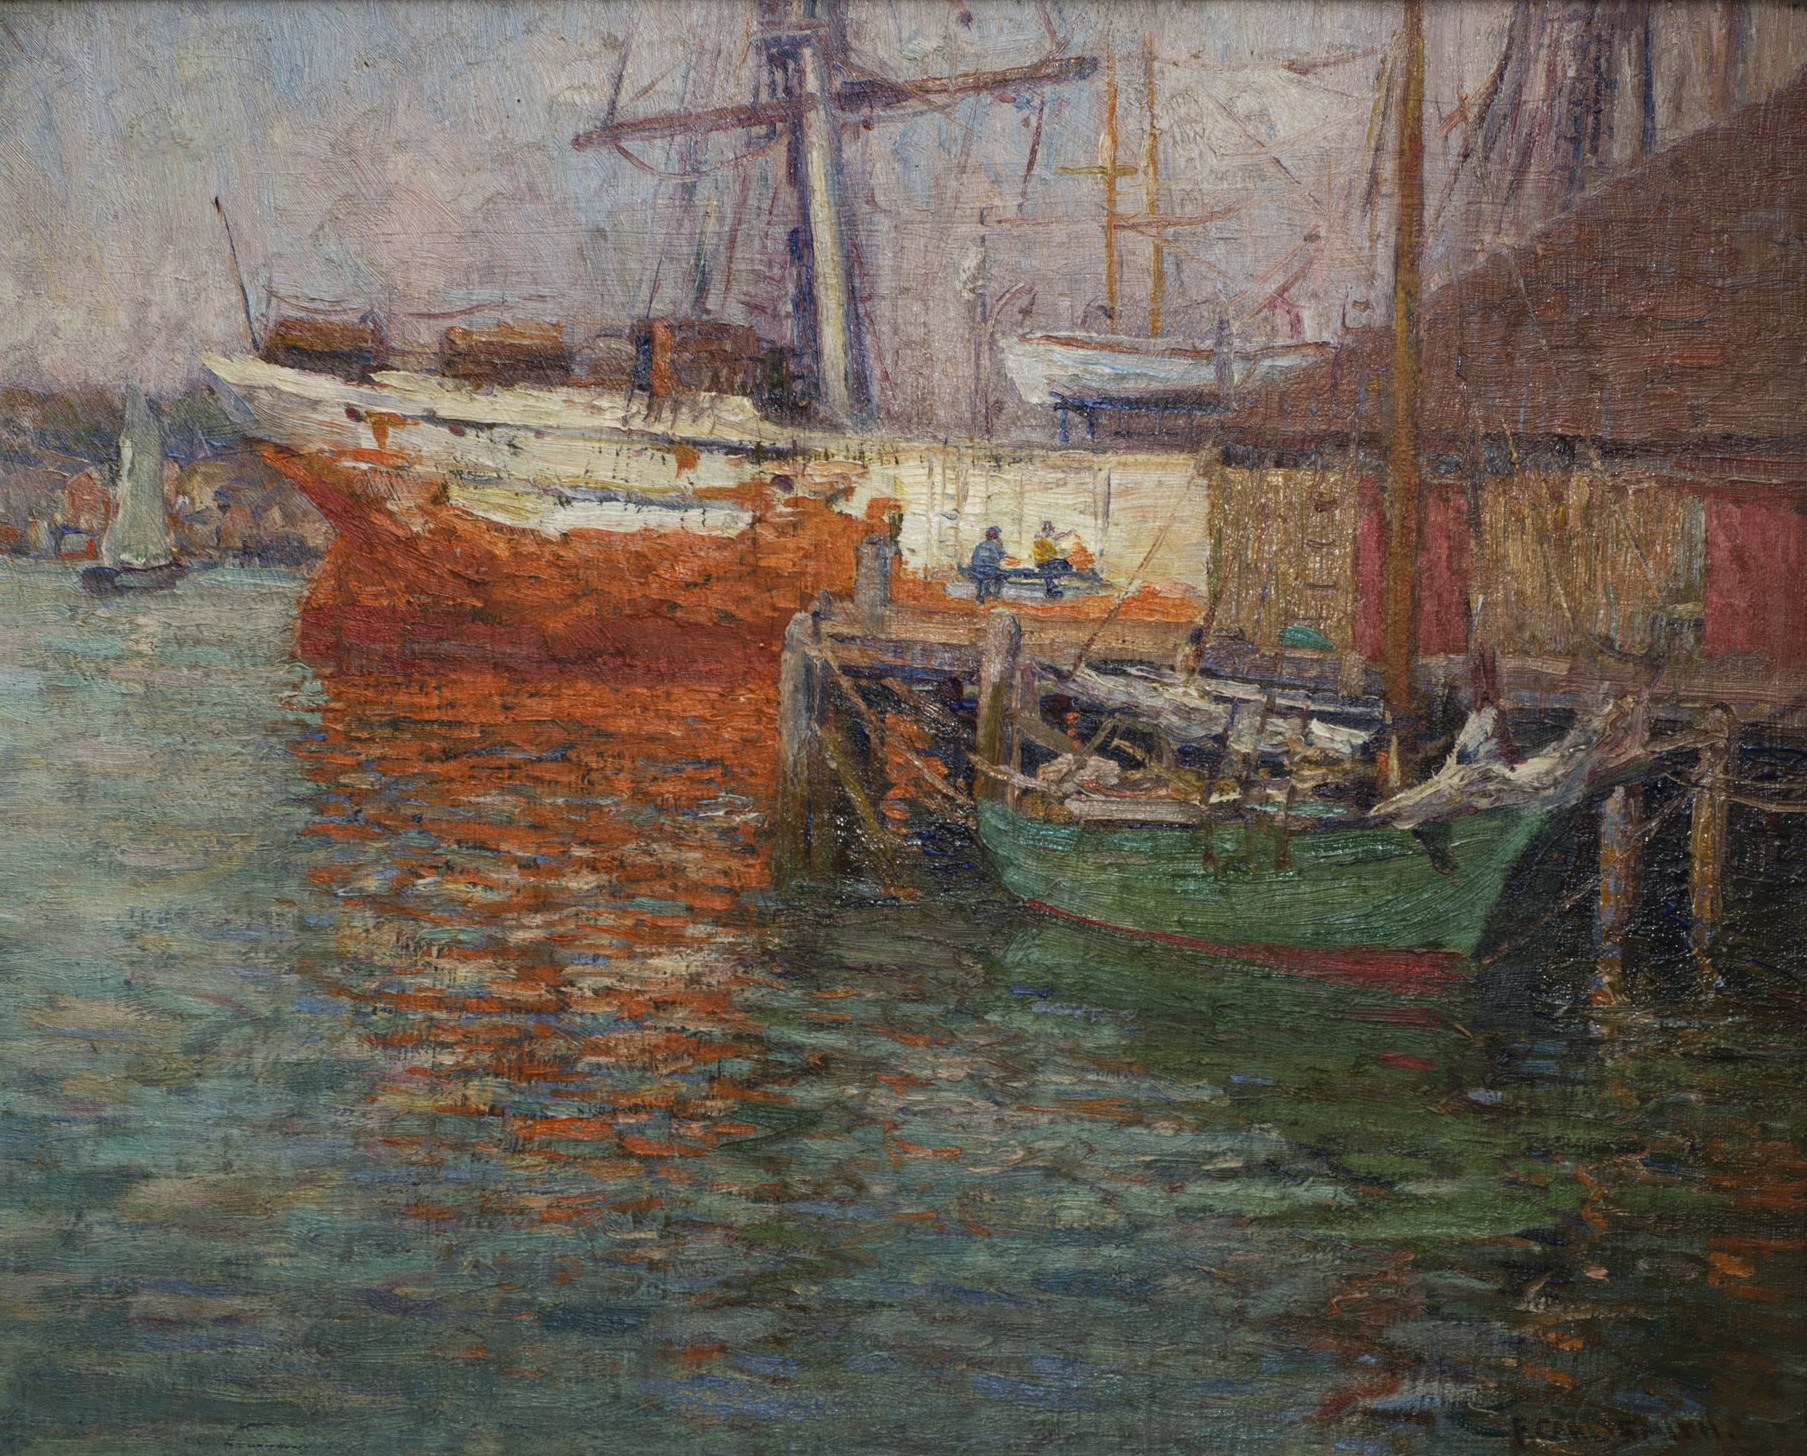 F. Carl Smith,  The Spanish Salt Ship, Gloucester, MA , oil on canvas. From The Art of Collecting: A Fundraising Exhibition, December 2018.